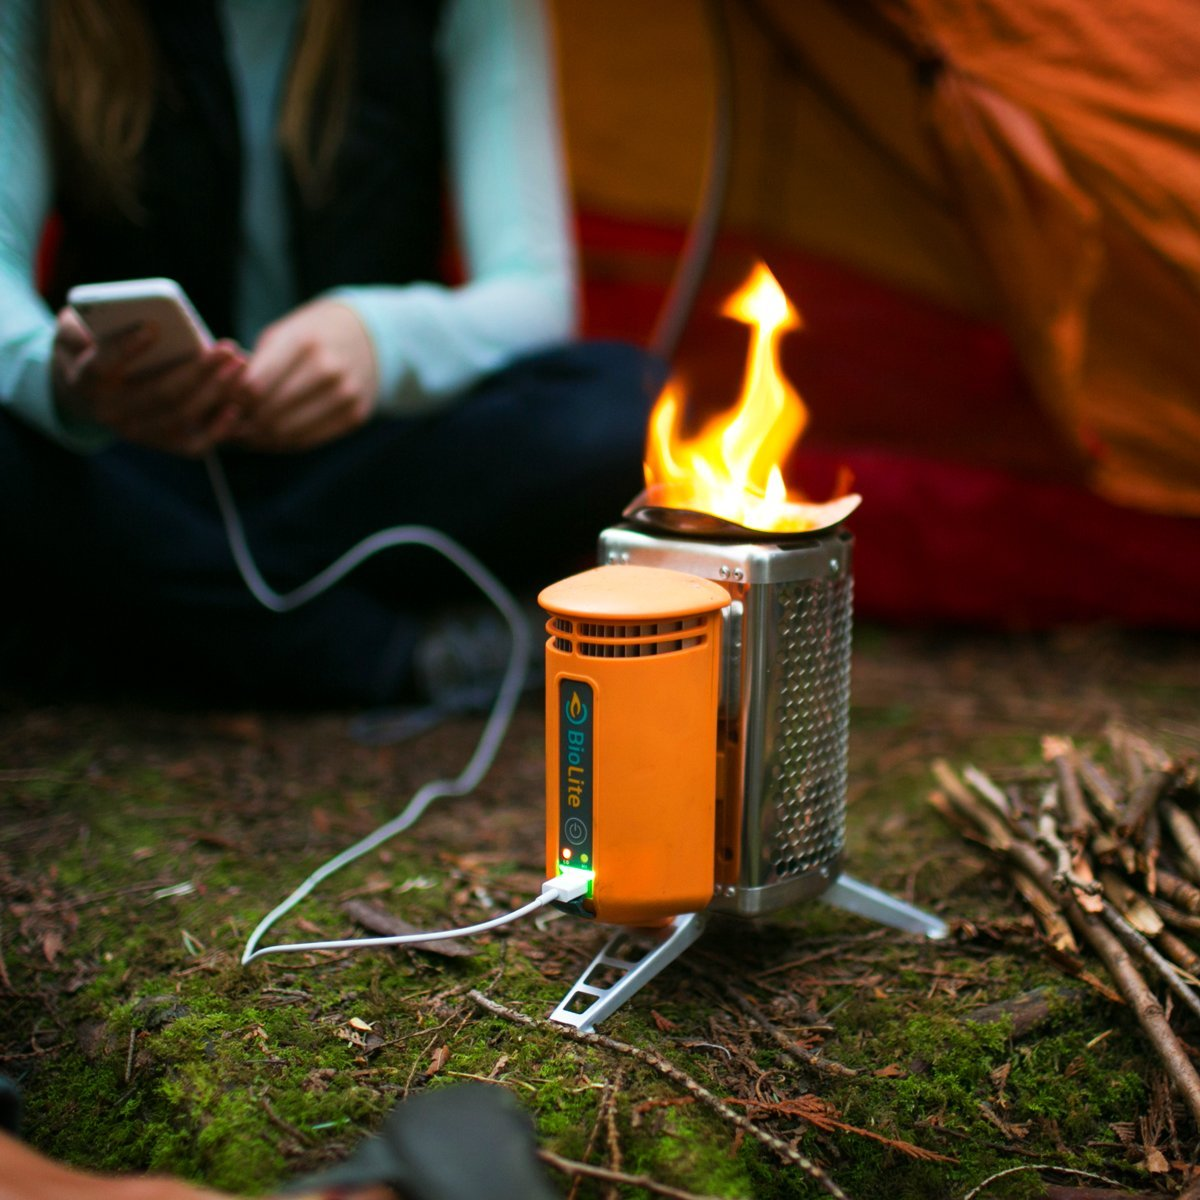 biolite stove and charger